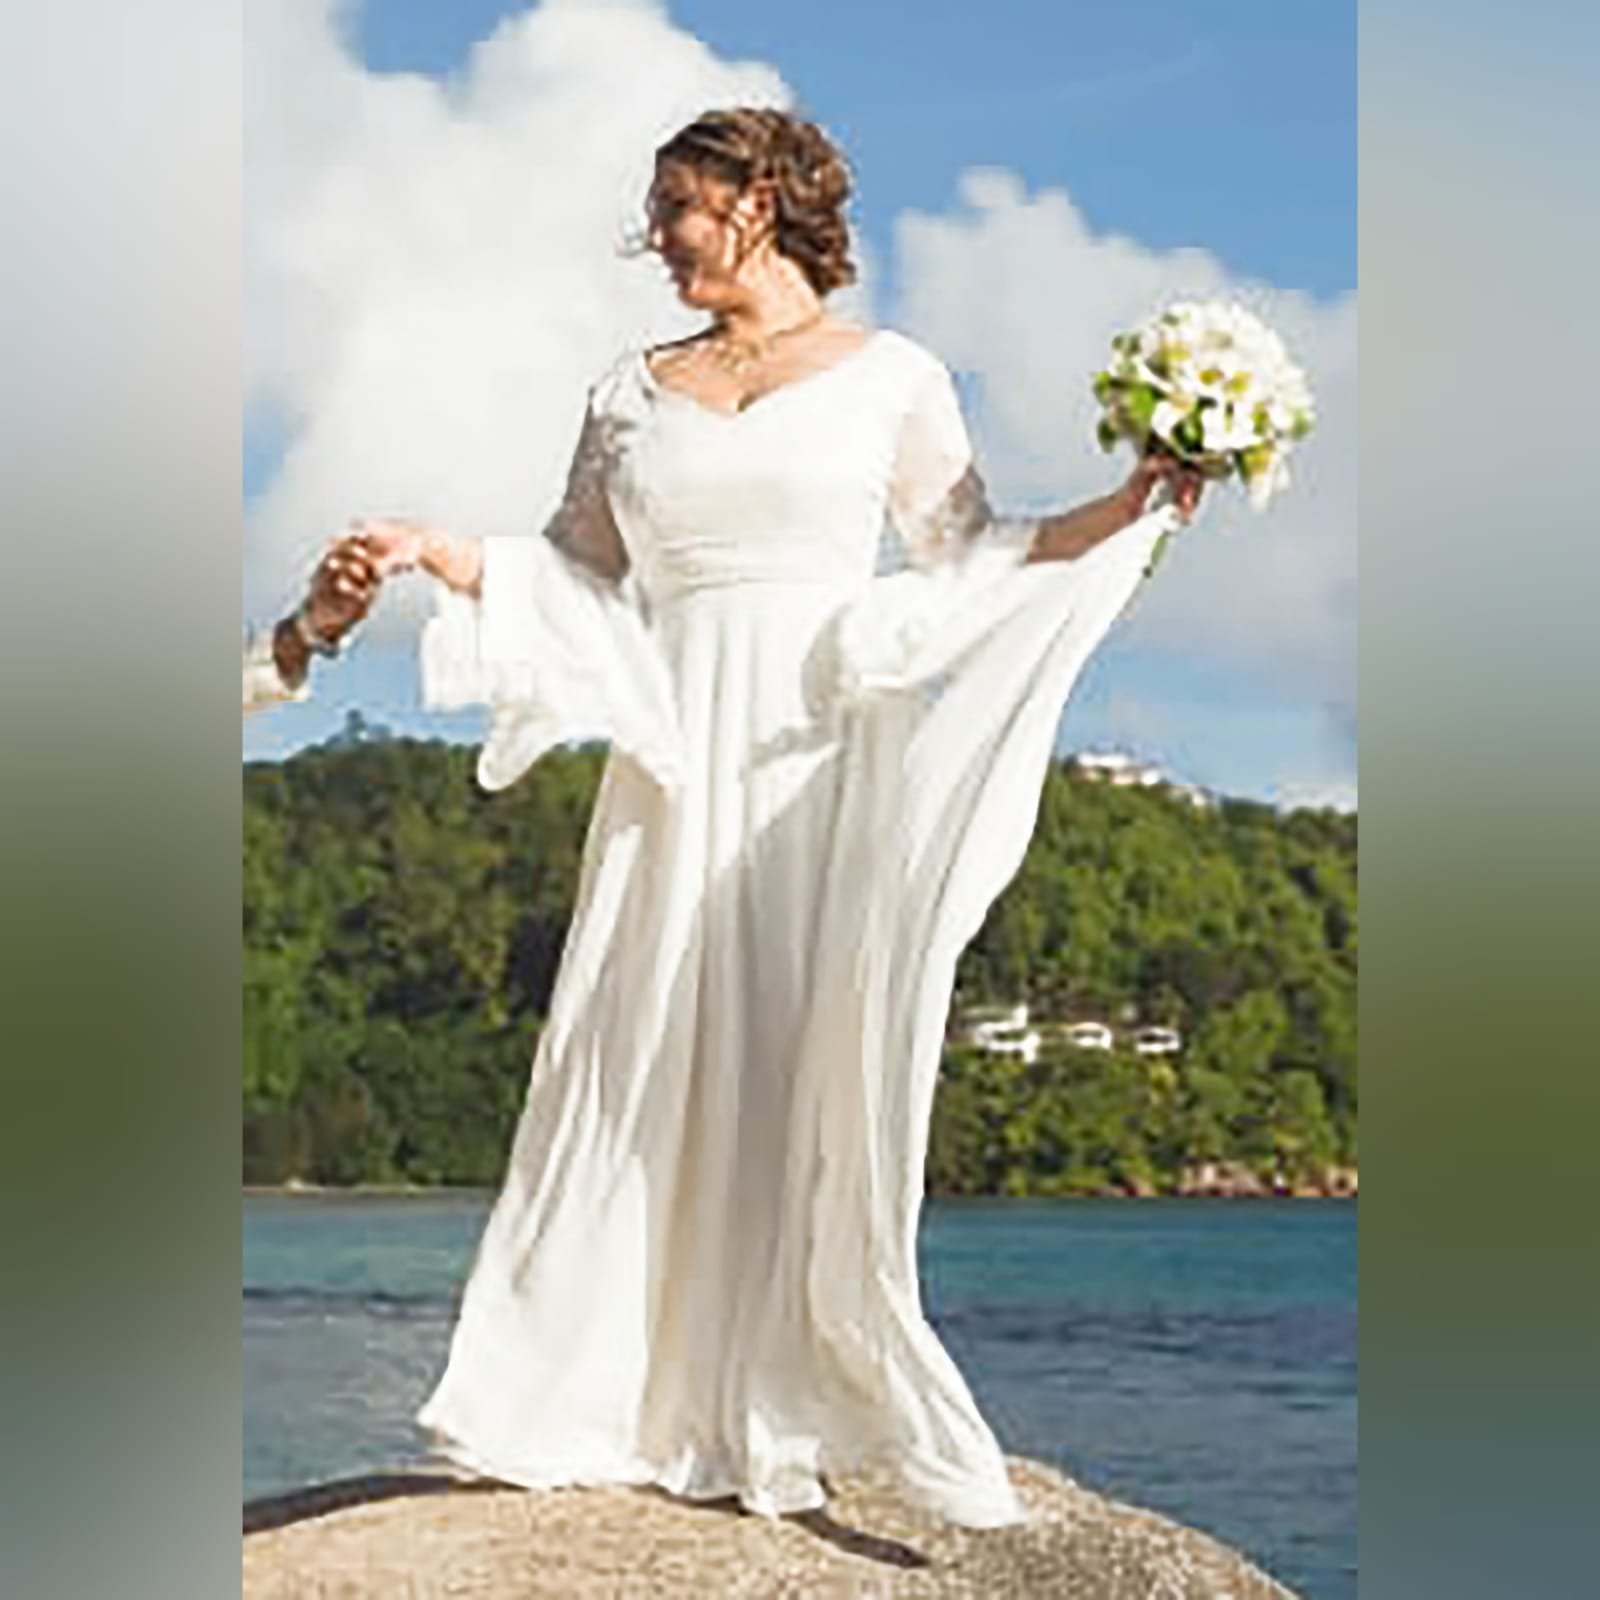 White flowy lace bodice wedding dress 1 white flowy lace bodice wedding dress. With bell sleeve and train. Sleeve and belt detailed with pearls. Stunnning wedding dress awesome for a beach wedding.